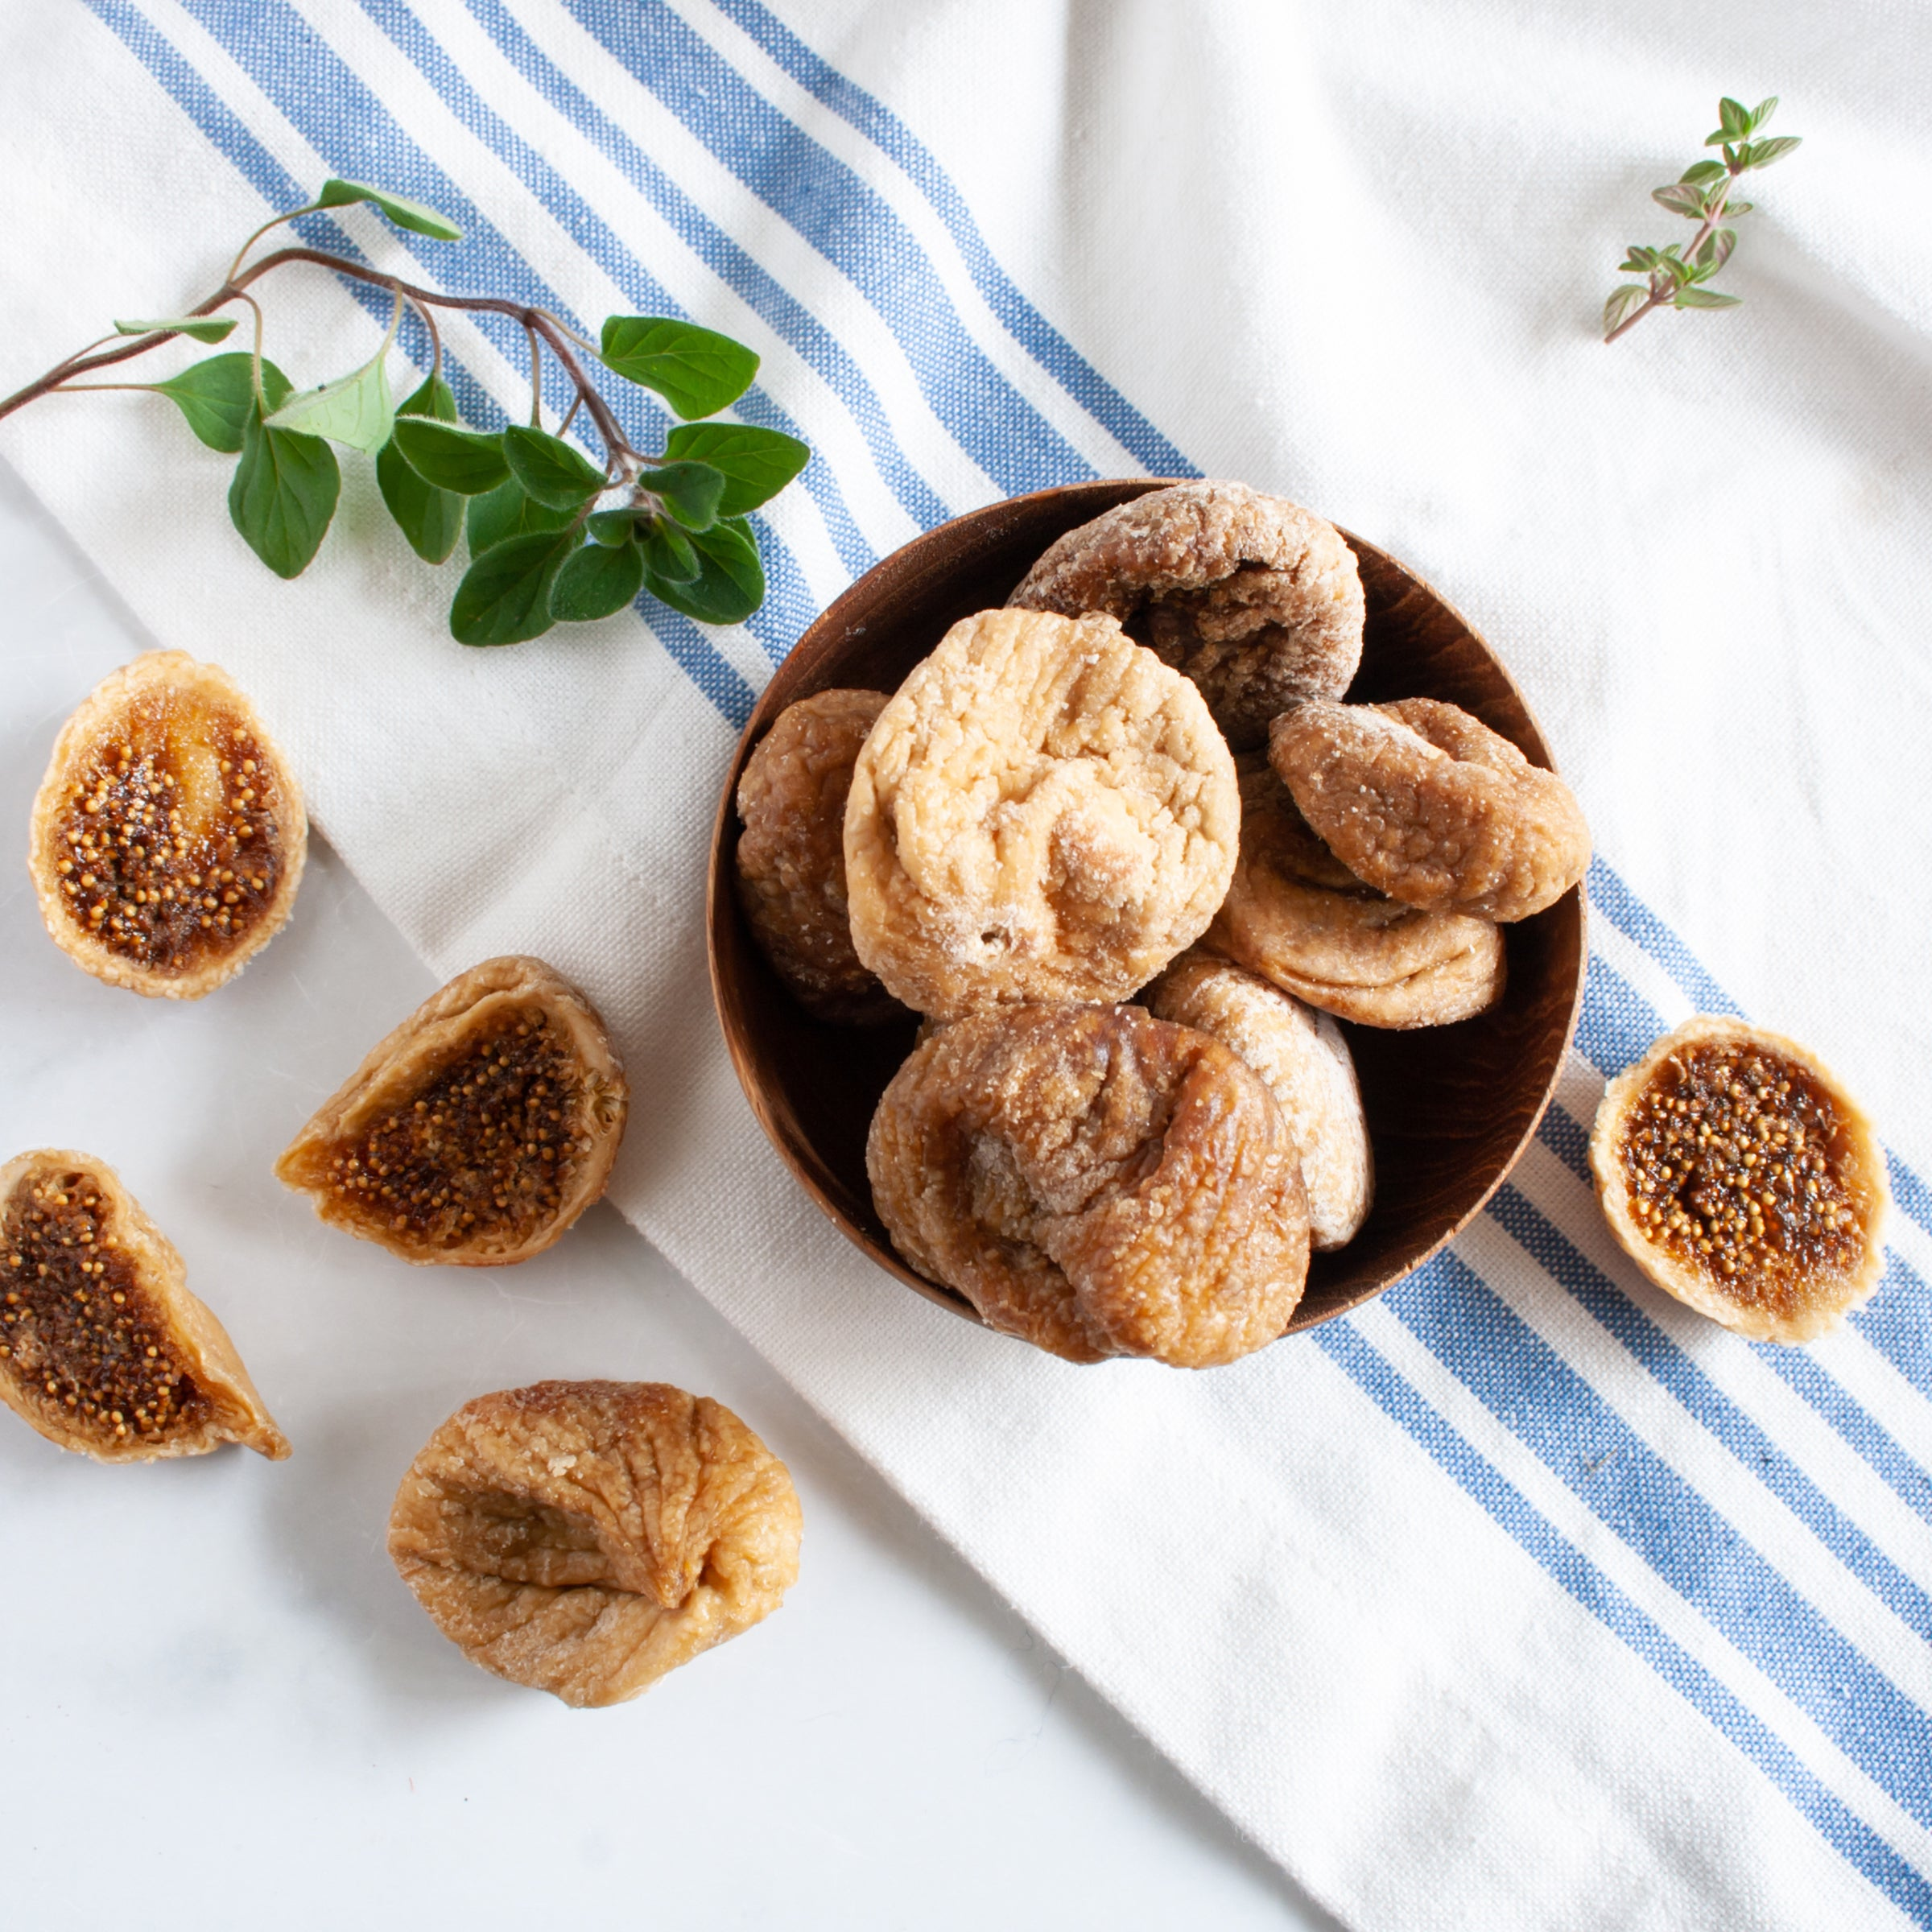 Organic Dried Figs_International Harvest_Dried Fruits, Nuts & Seeds